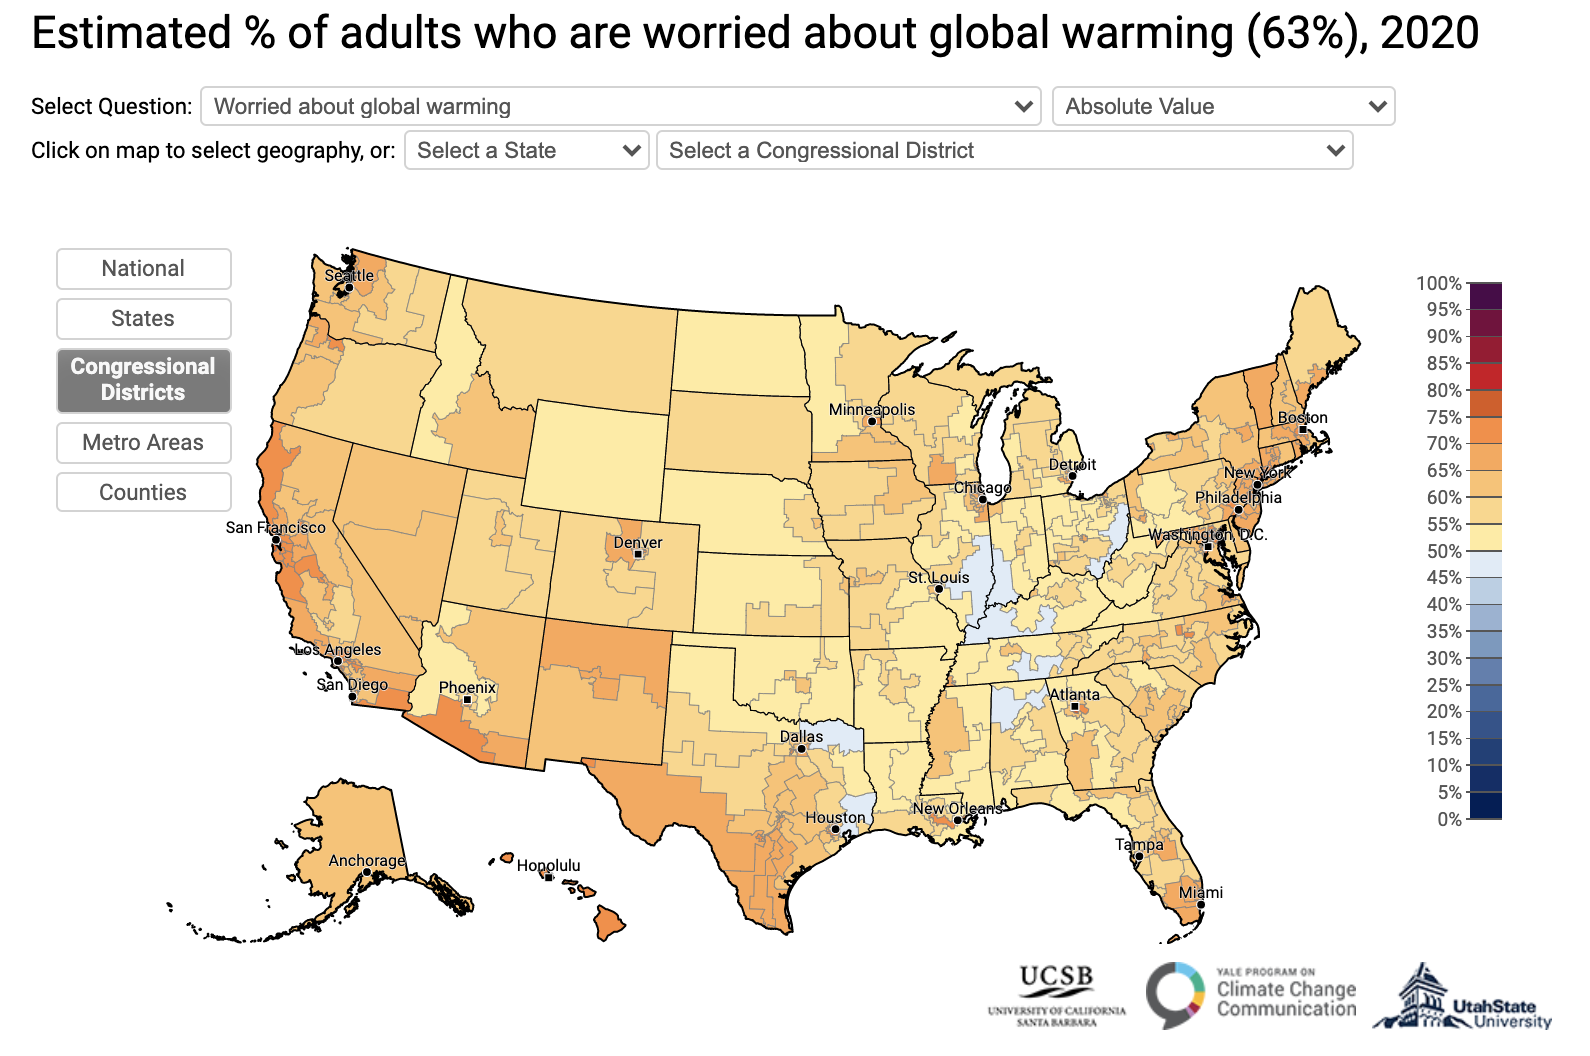 Yale Climate Opinion Maps